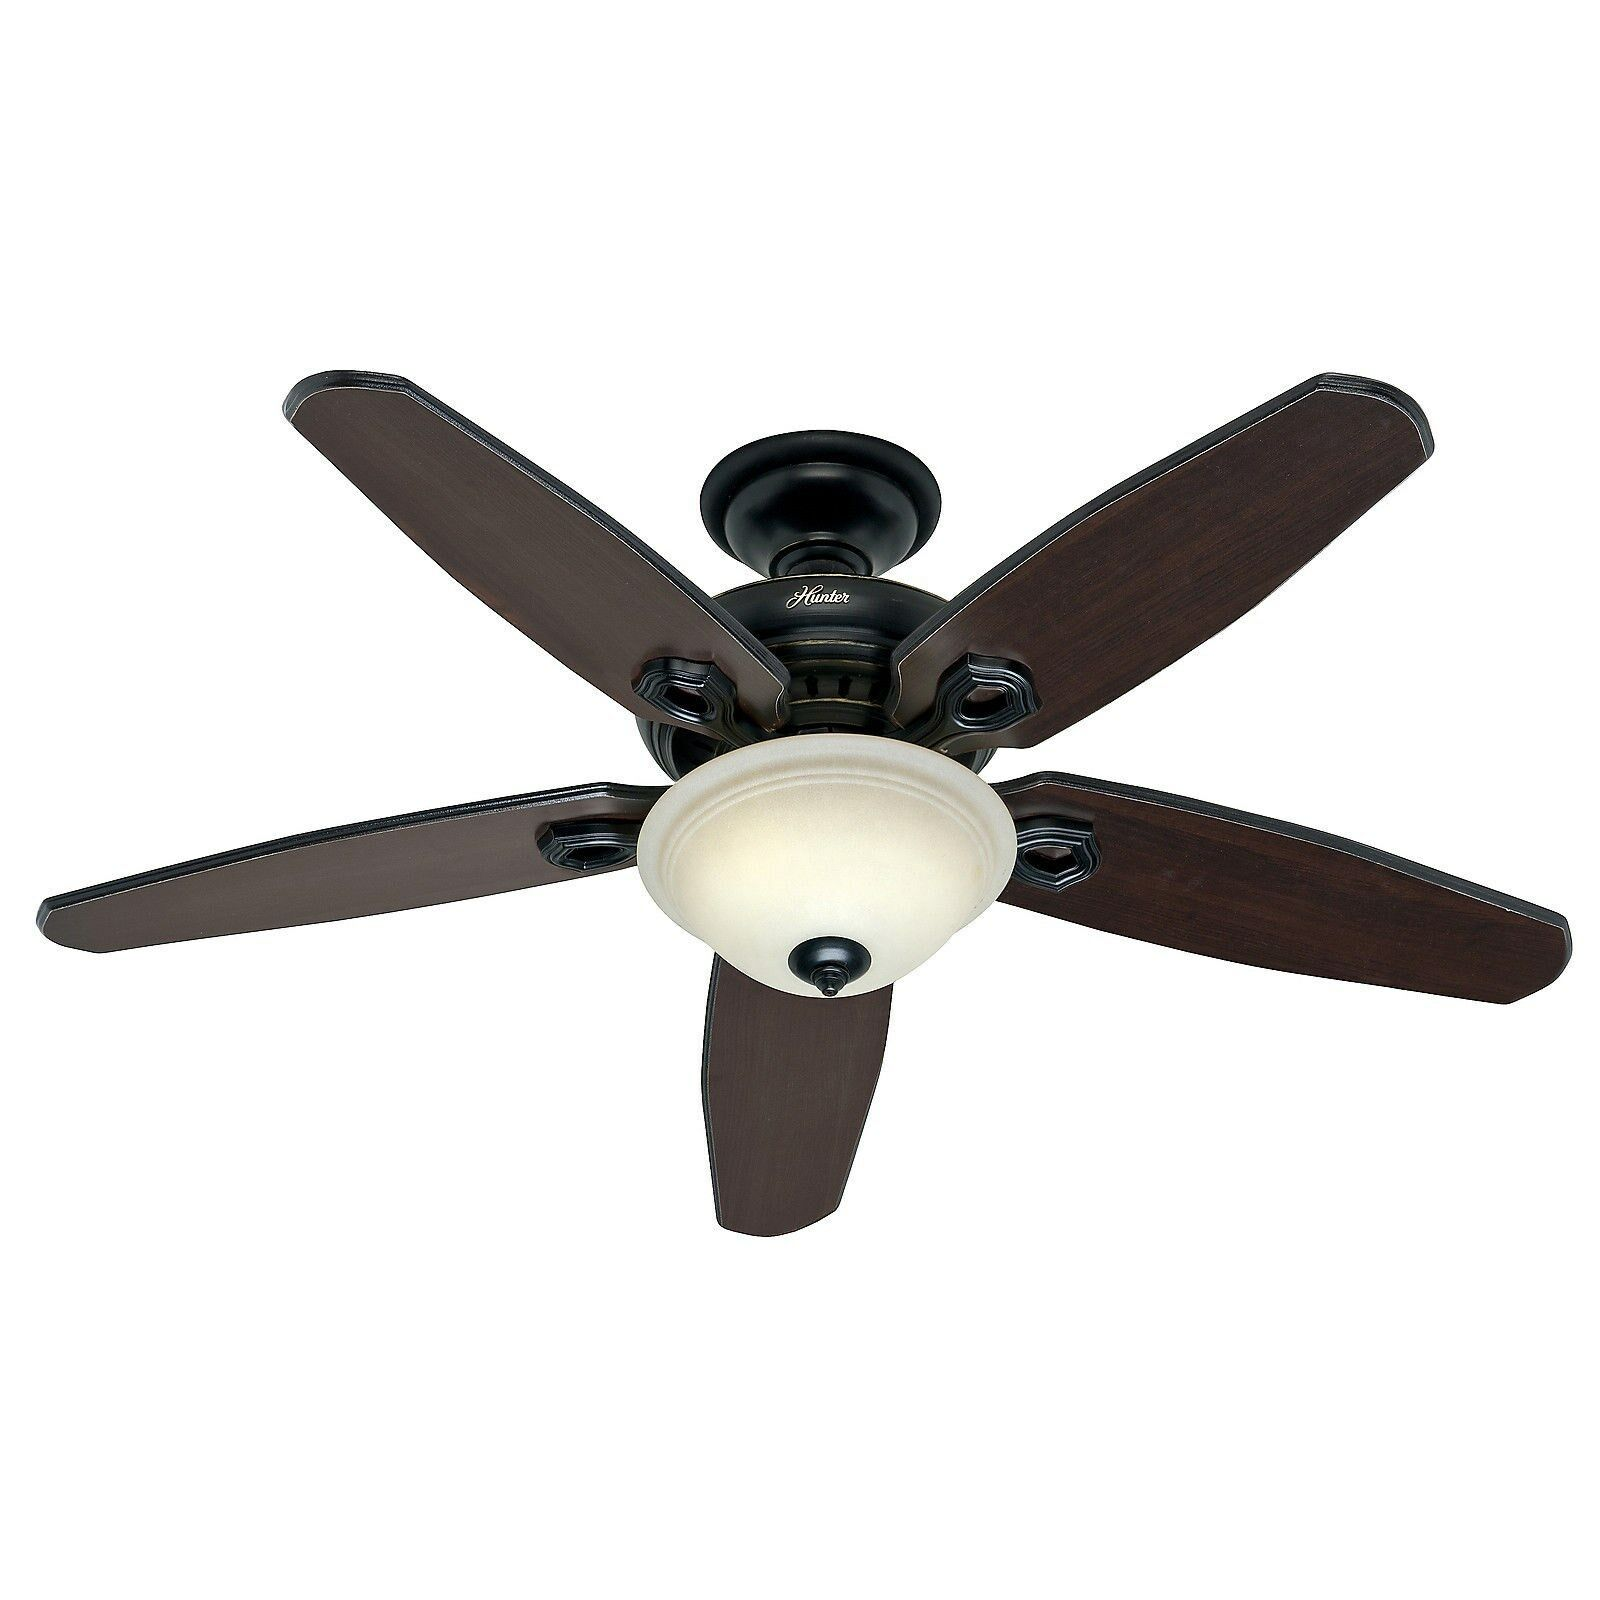 hunter 52 in basque black ceiling fan with light remote control ebay. Black Bedroom Furniture Sets. Home Design Ideas